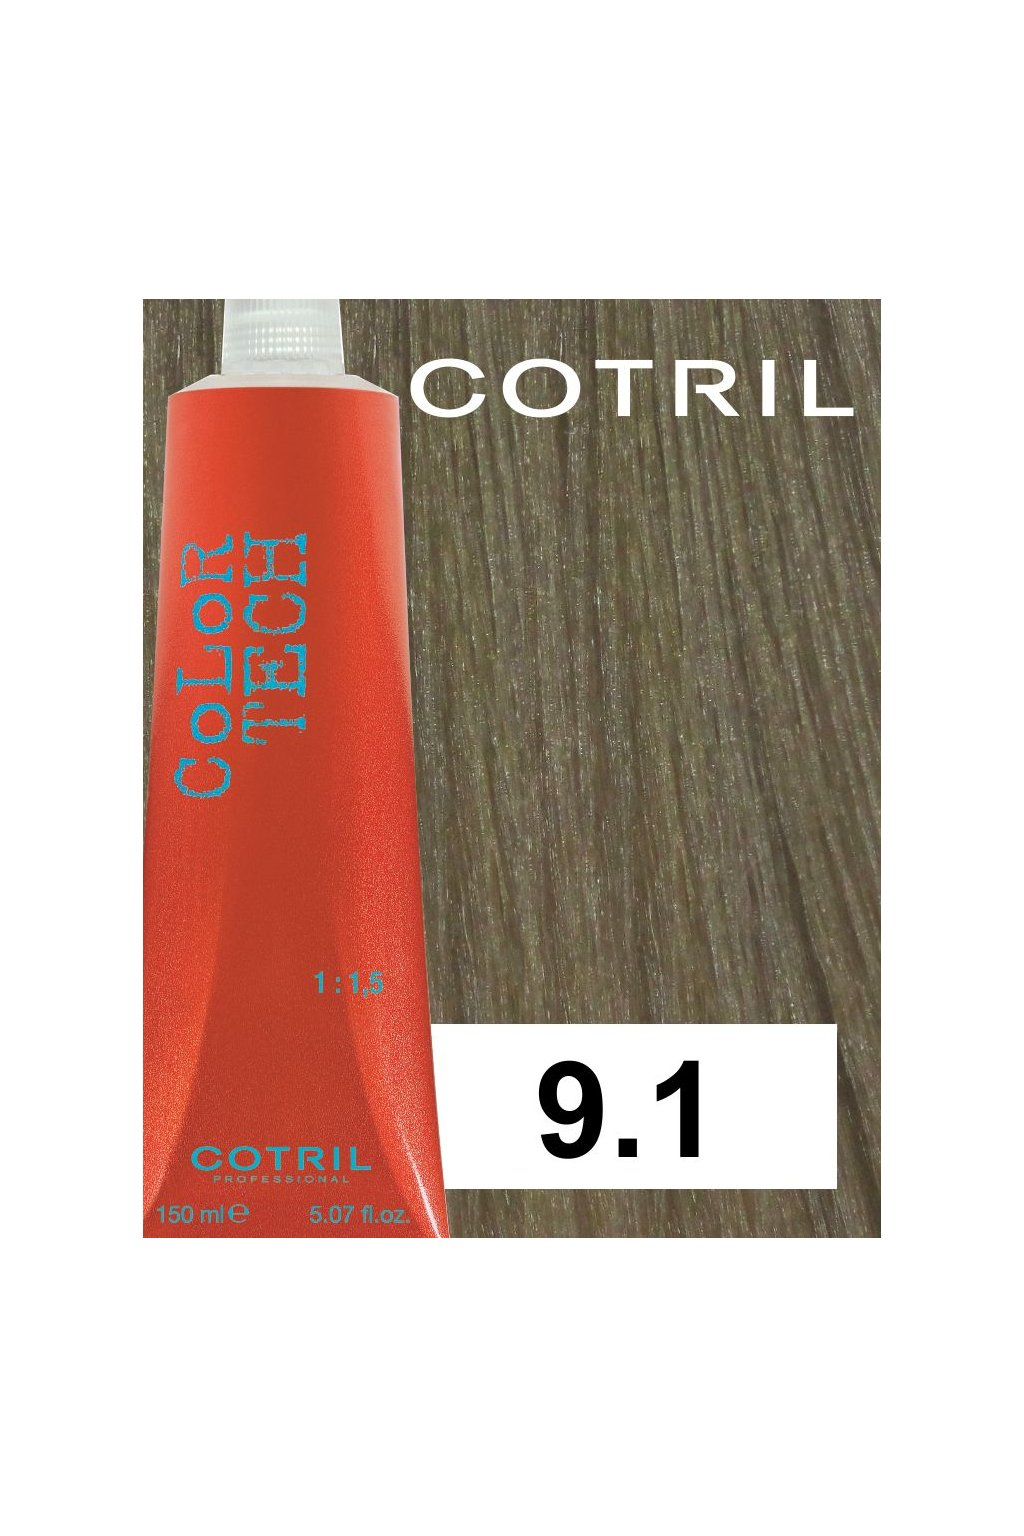 9 1 ct cotril